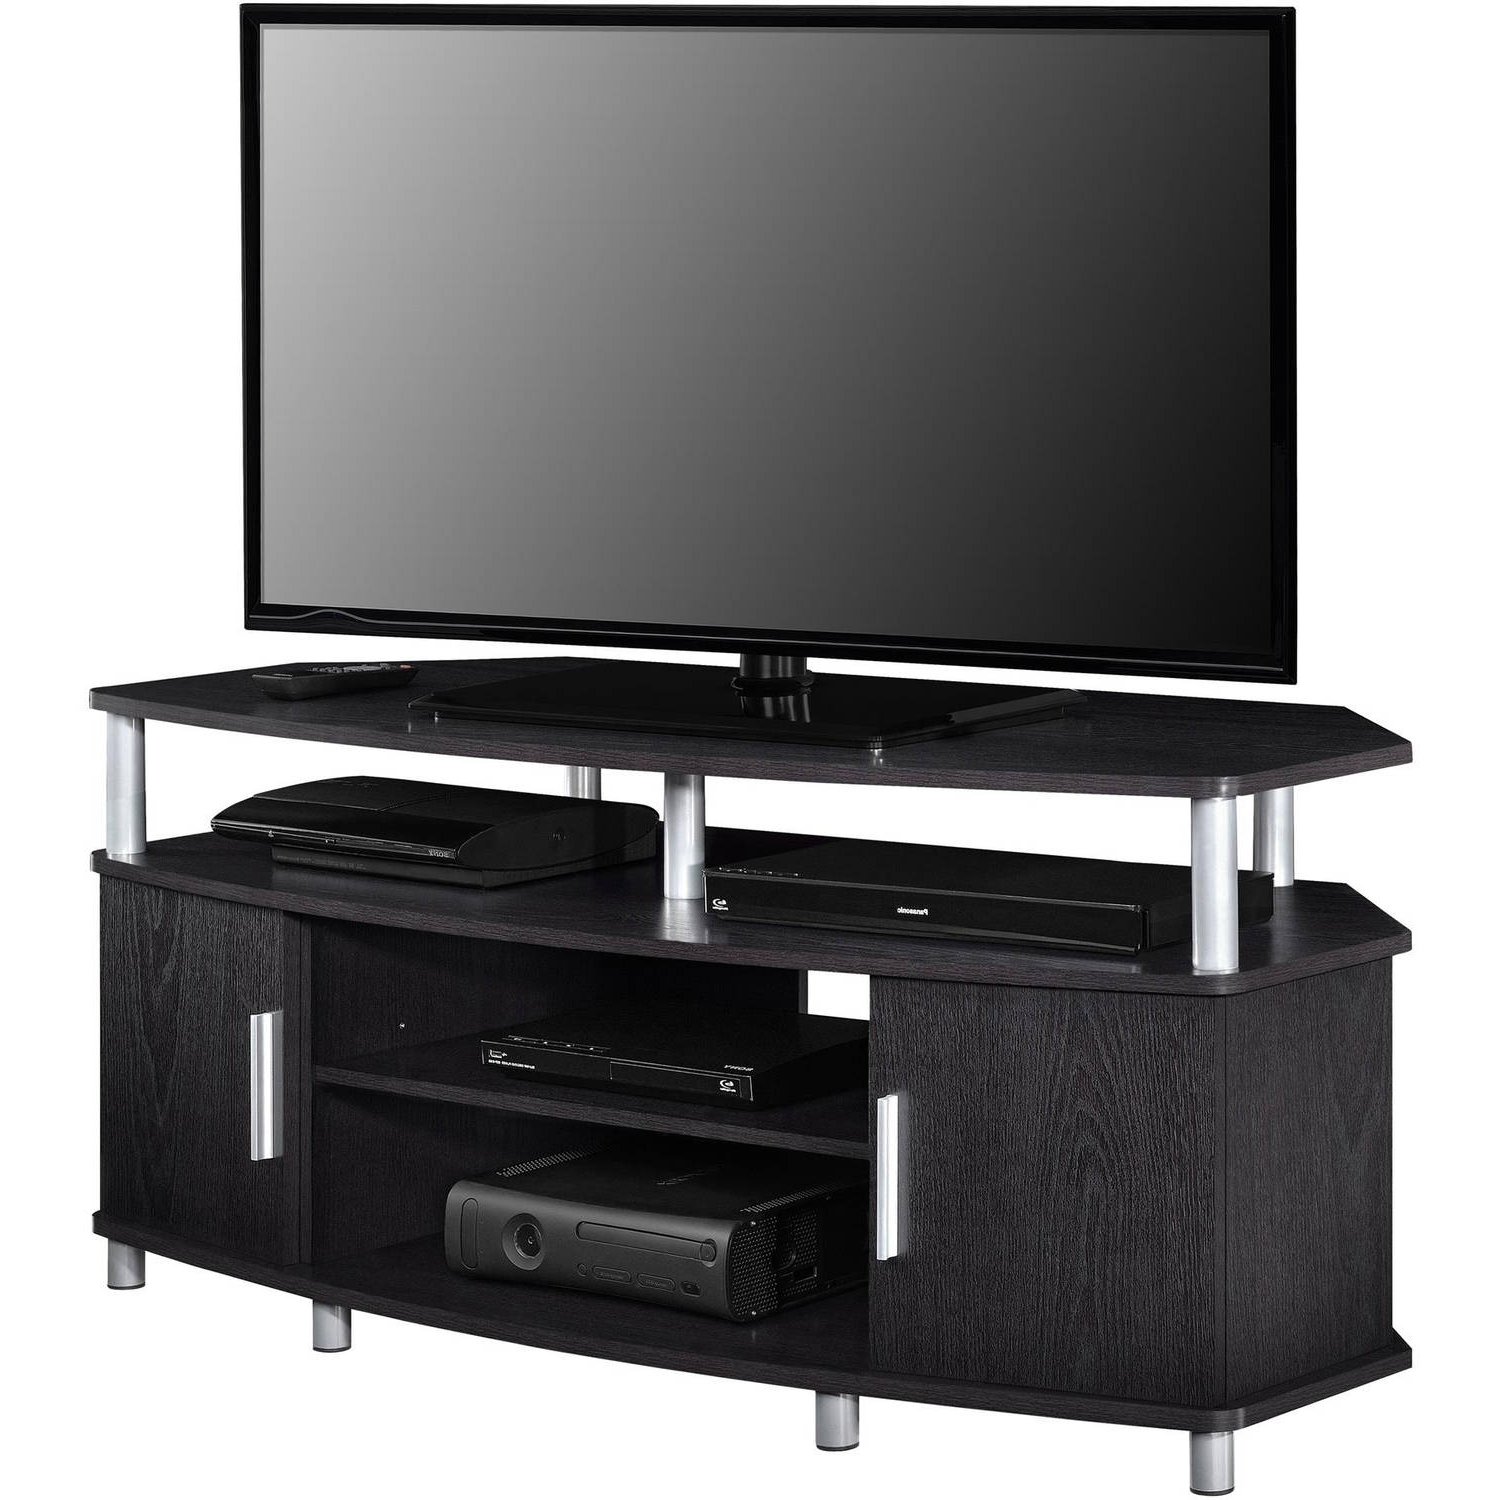 Most Recent New Tv Stands For Flat Screens 55 Media Console Black Corner Living For 55 Inch Corner Tv Stands (View 9 of 20)